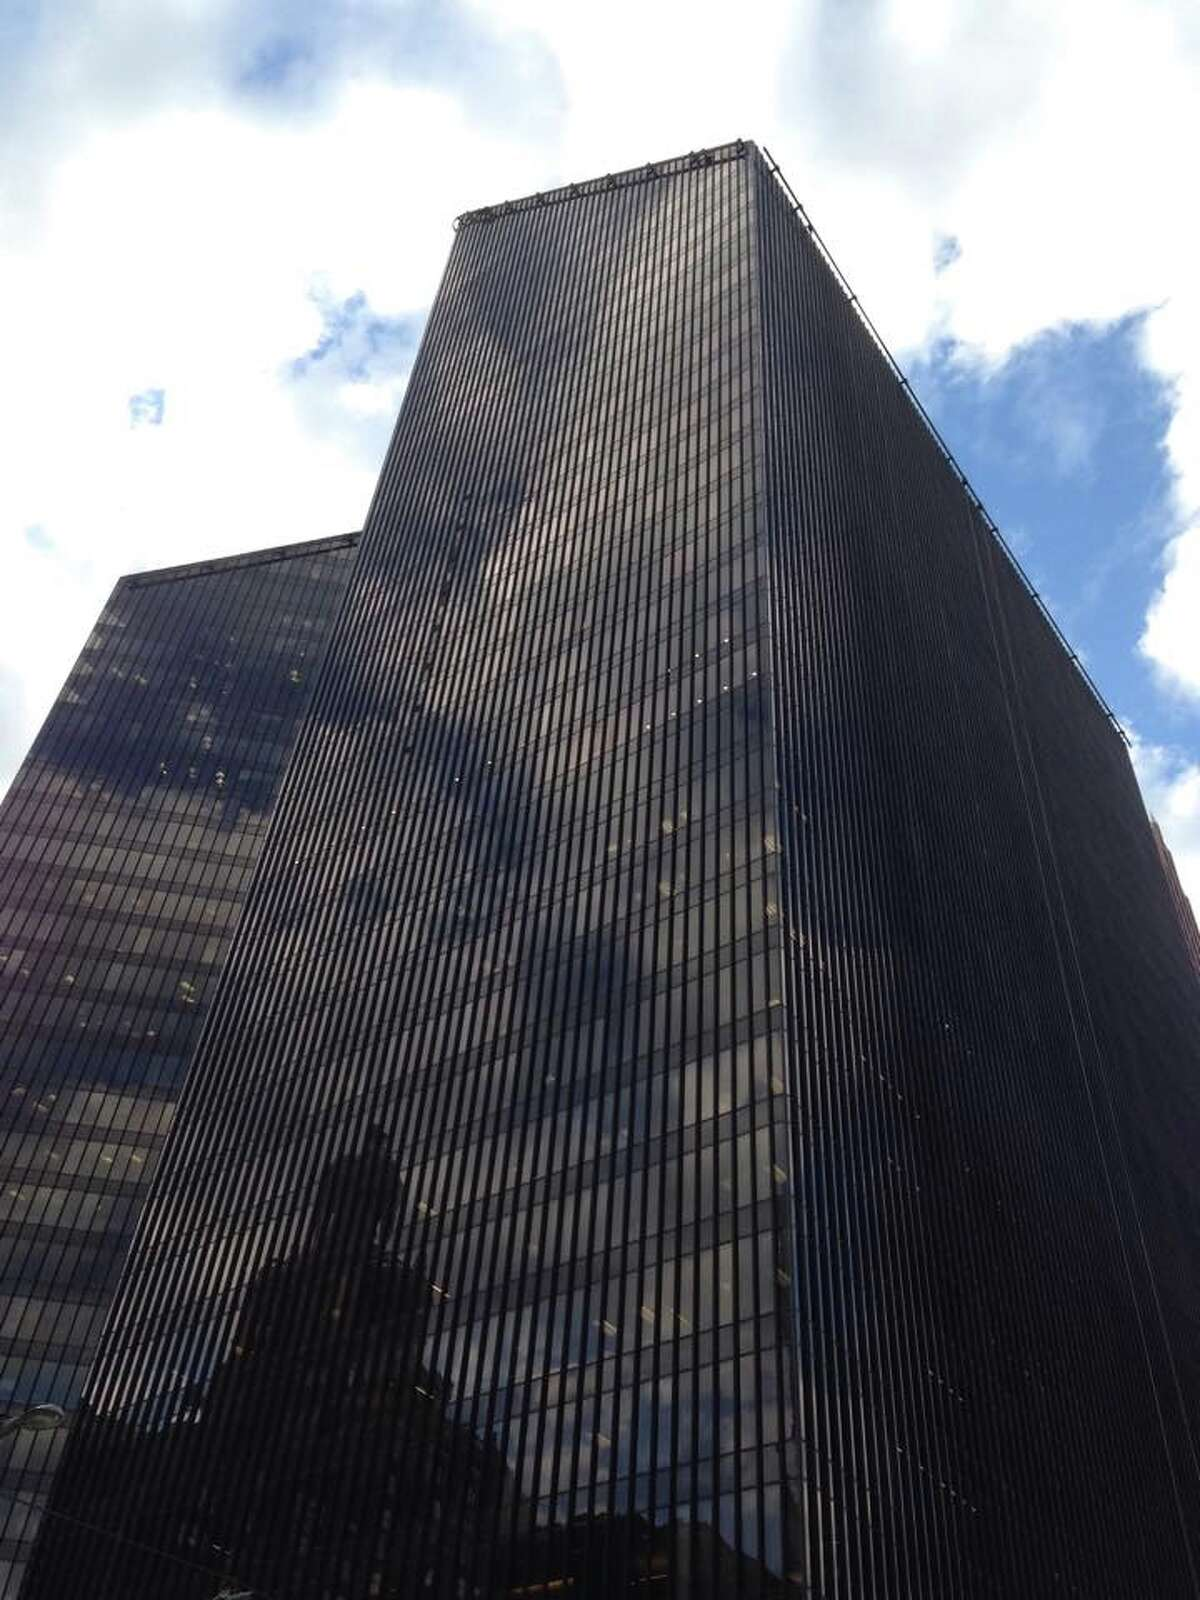 Bracewell & Giuliani recently signed a 189,061-square-foot long-term lease renewal at Pennzoil Place, 711 Louisiana.